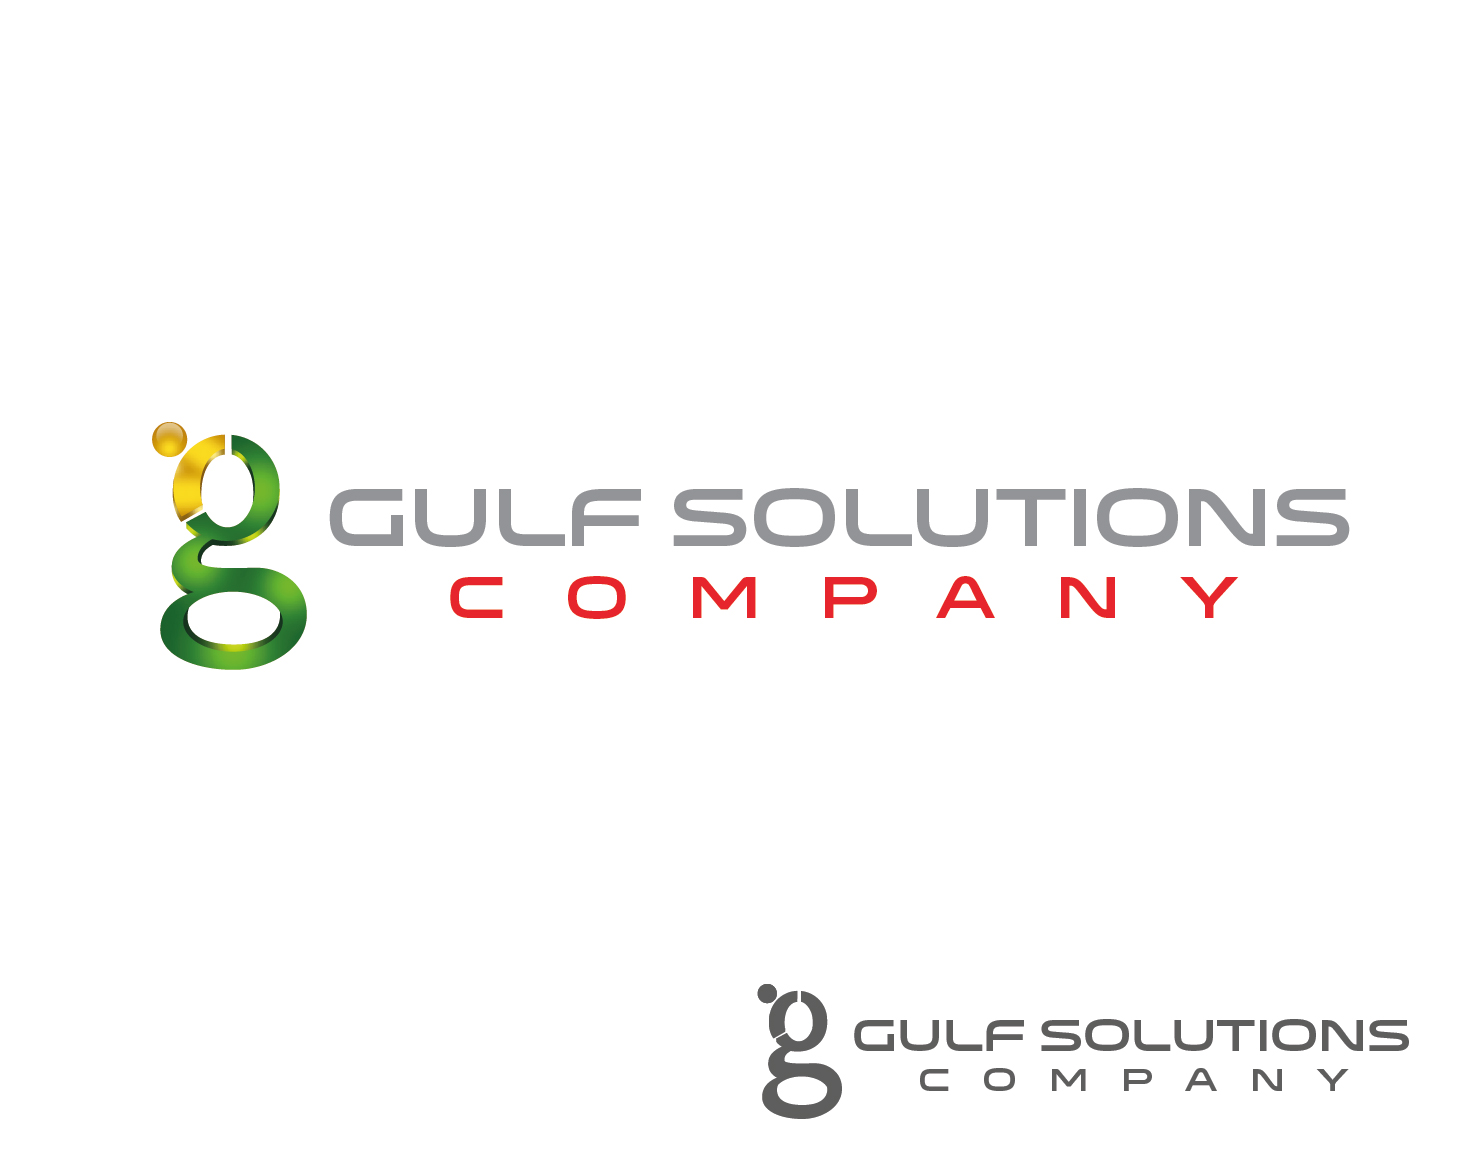 Logo Design by VENTSISLAV KOVACHEV - Entry No. 28 in the Logo Design Contest New Logo Design for Gulf solutions company.